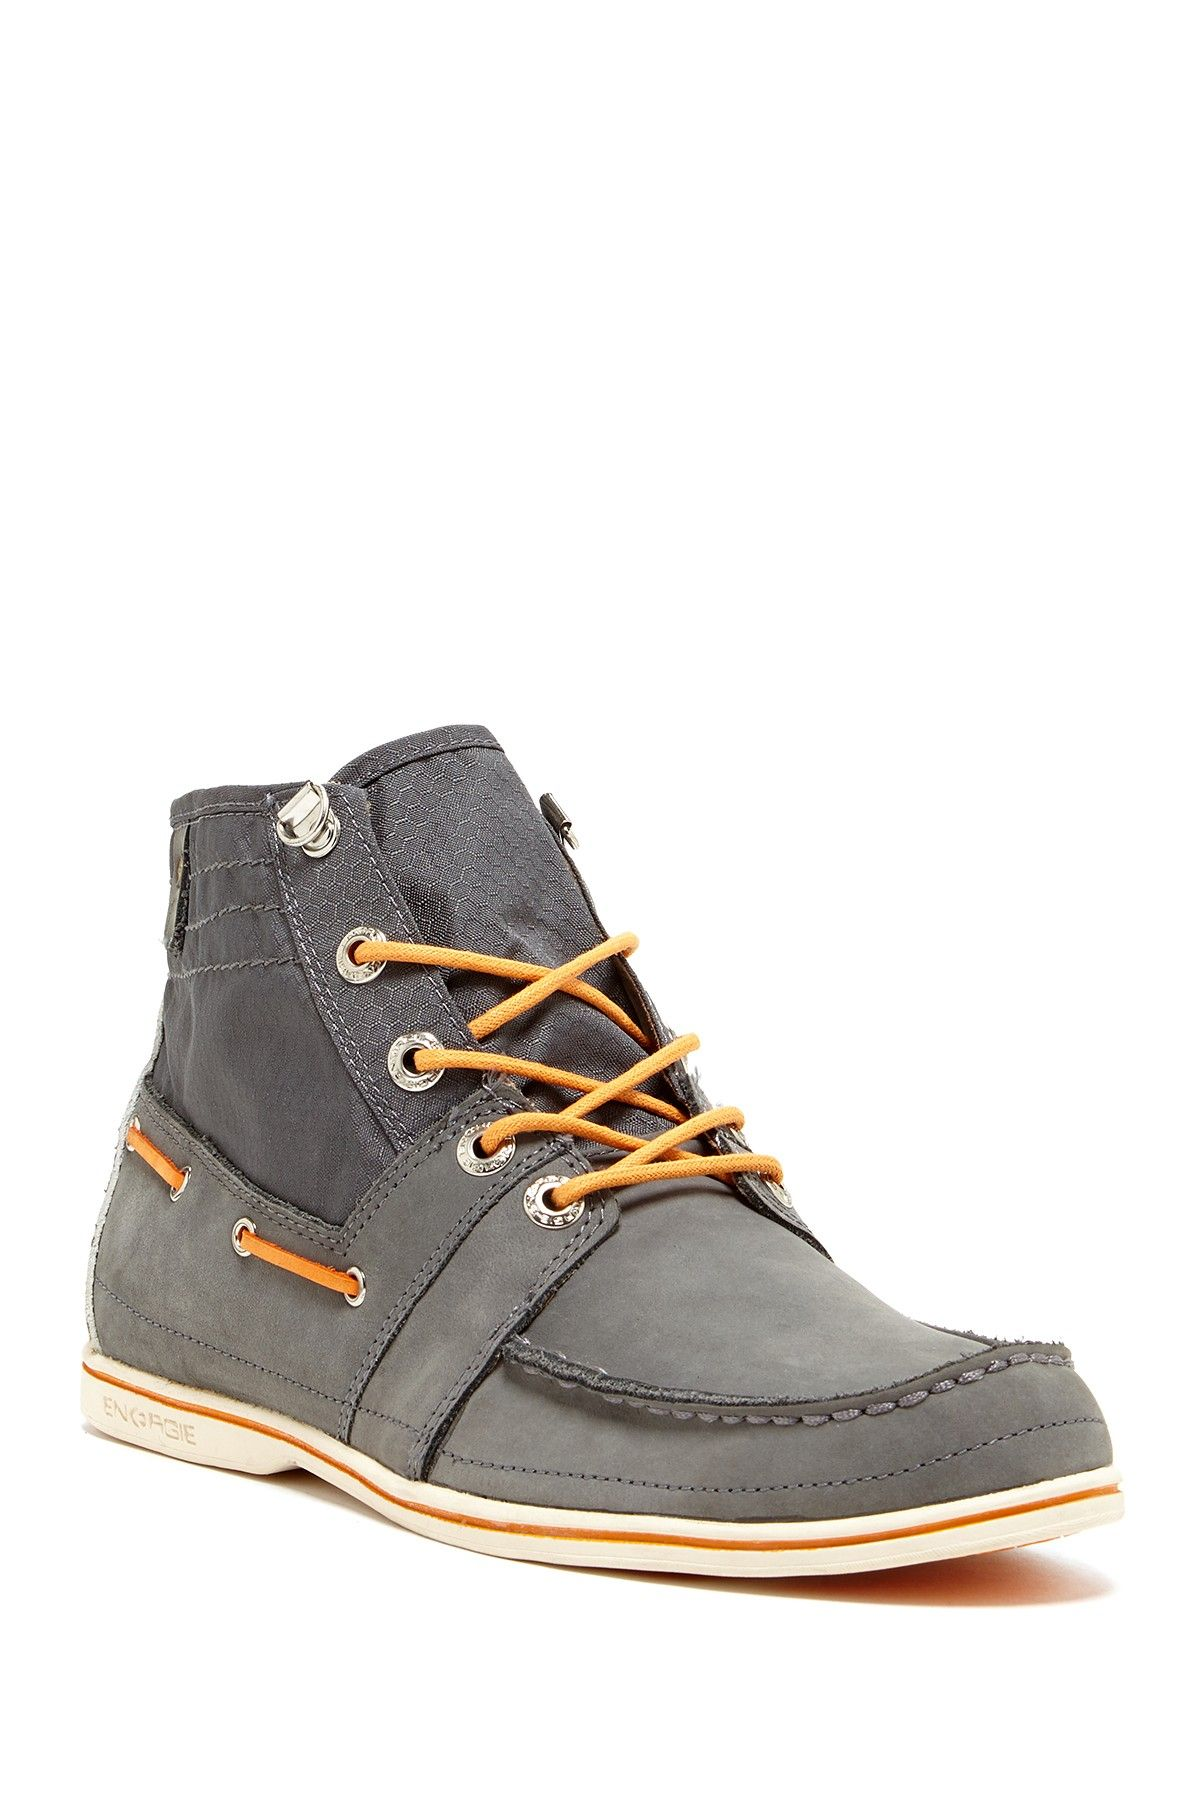 Punter High Top Boat Shoe   Best shoes